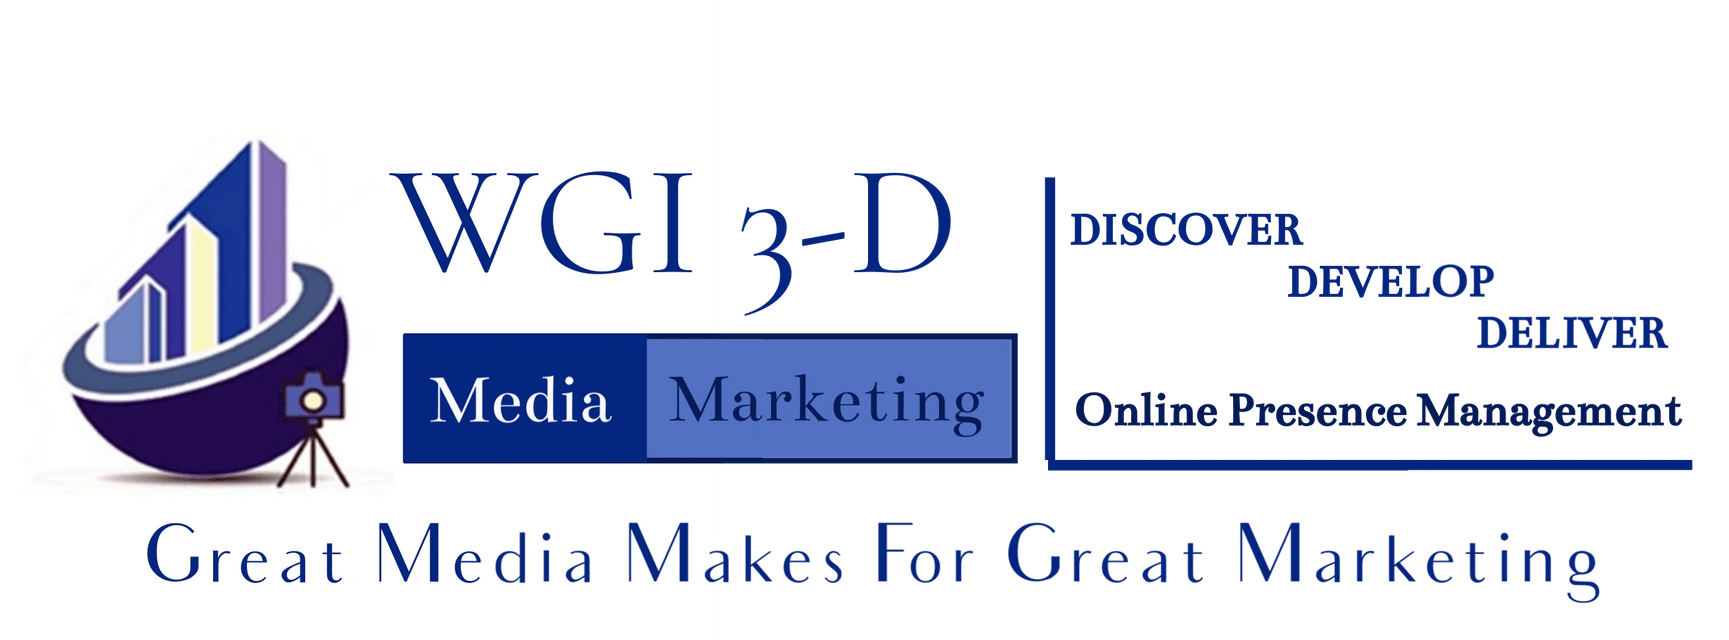 WGI 3-D Media & Marketing